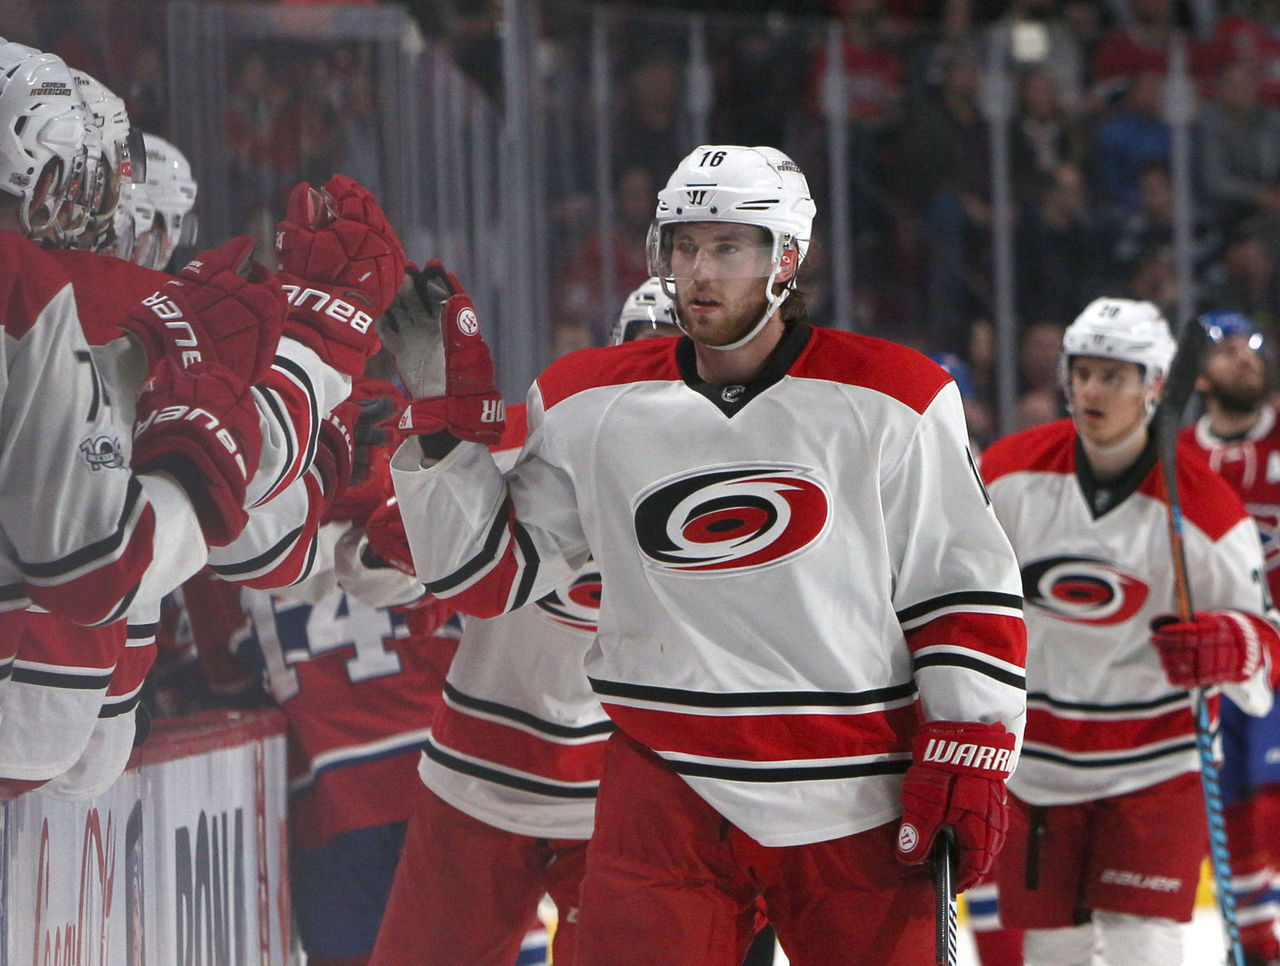 Cropped_2017-03-24t003944z_674251677_nocid_rtrmadp_3_nhl-carolina-hurricanes-at-montreal-canadiens